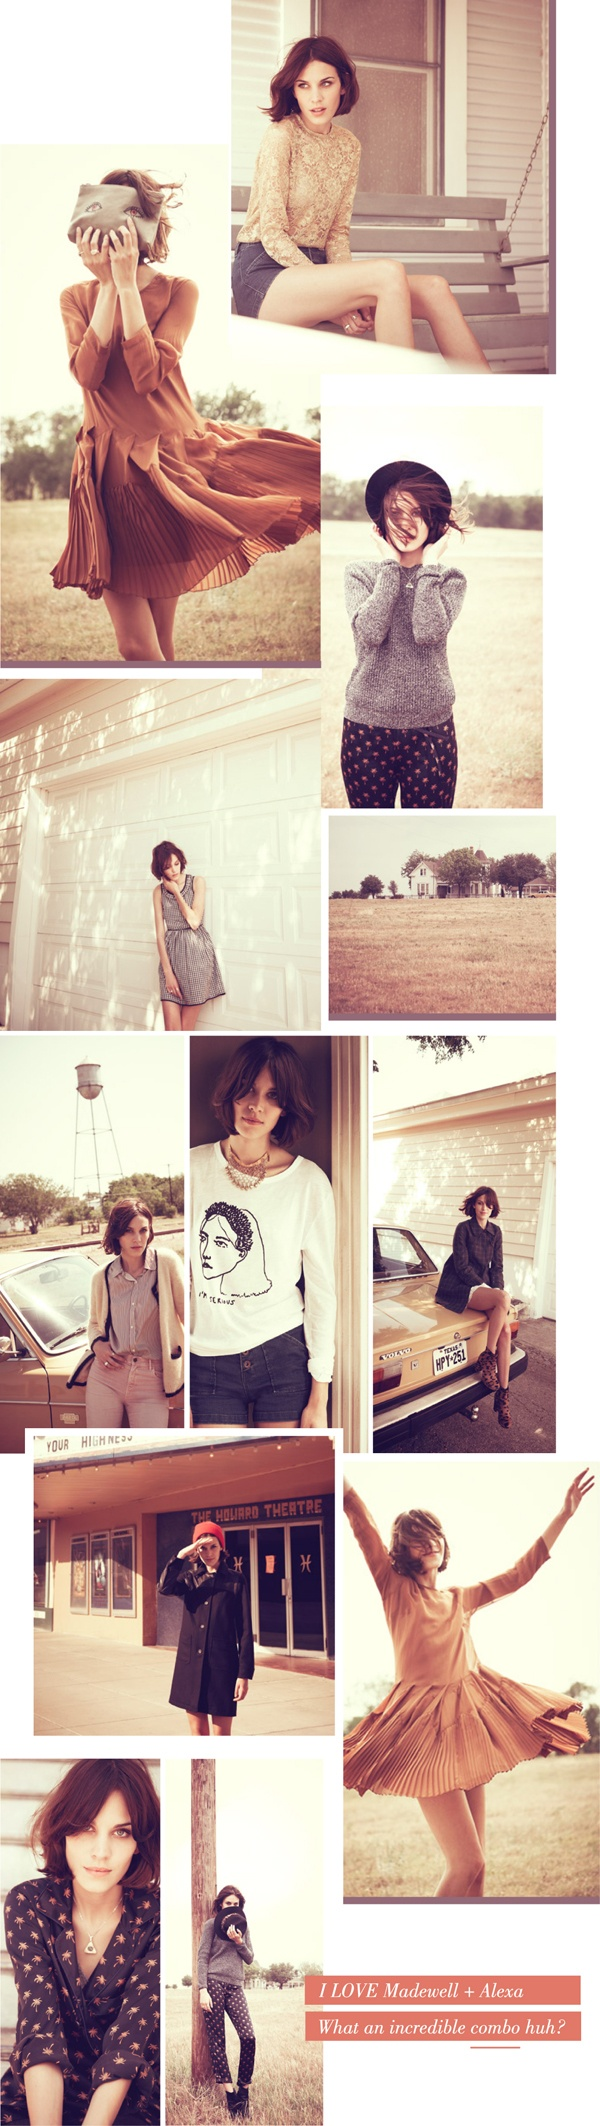 Alexa Chung, you are killing it this year